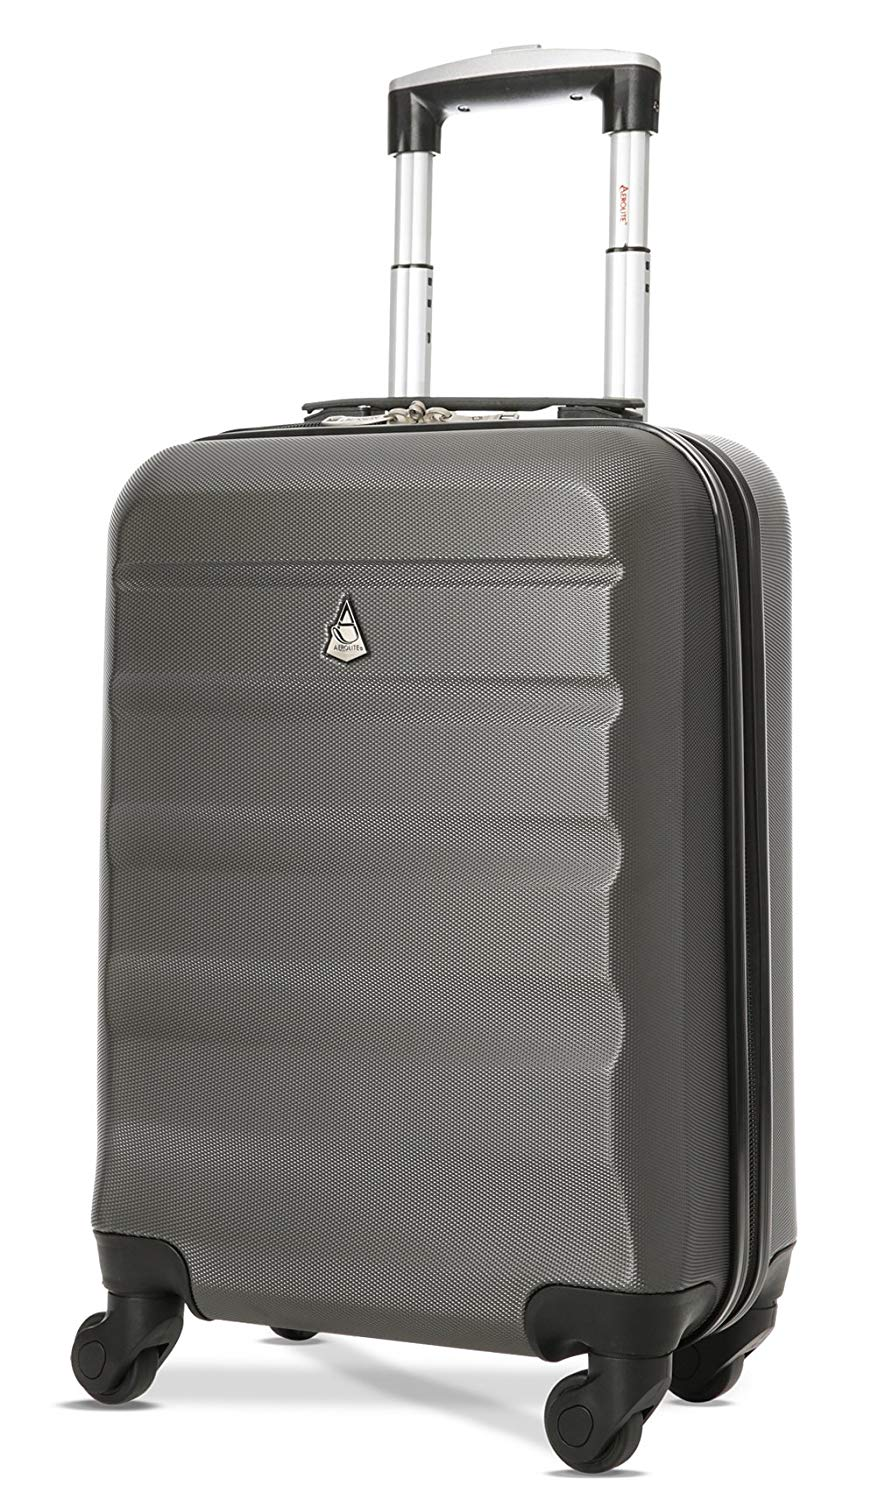 Aerolite Superlight Hard Shell Carry on travel